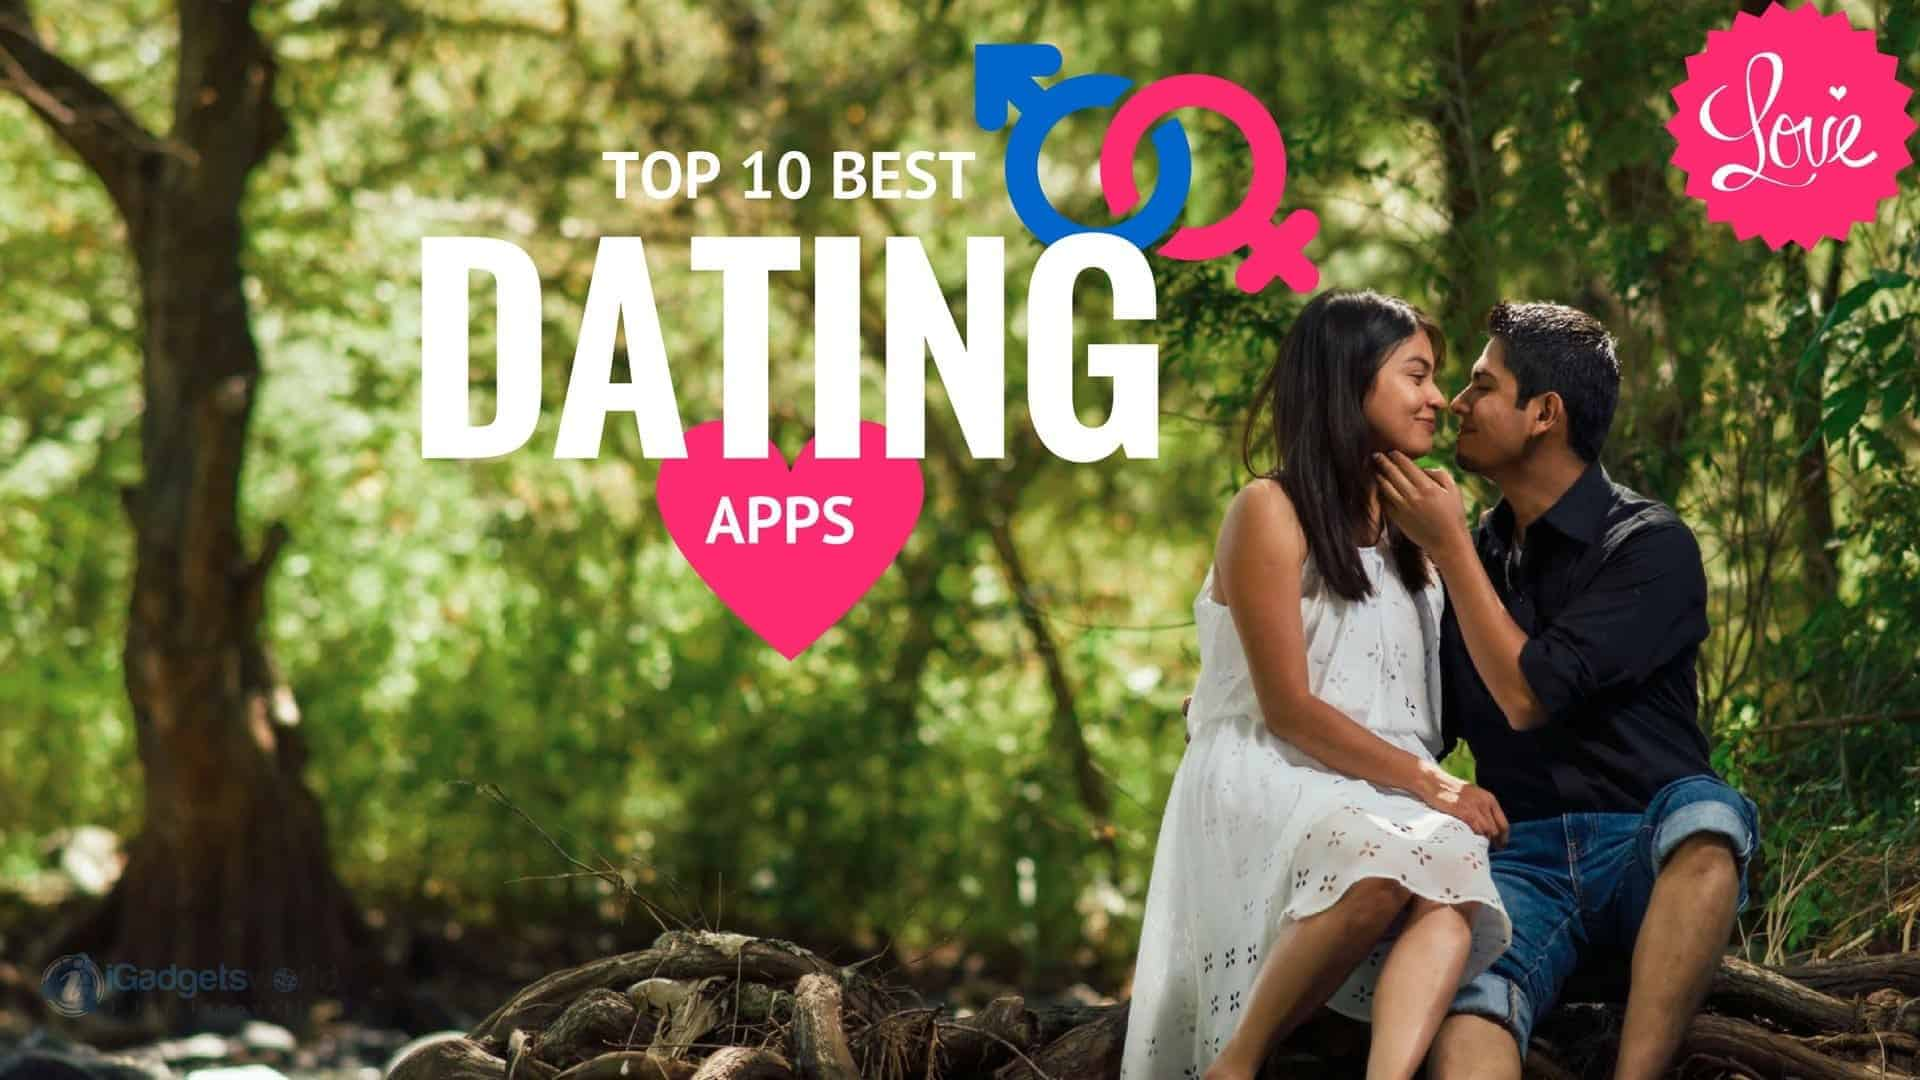 Best dating apps nj